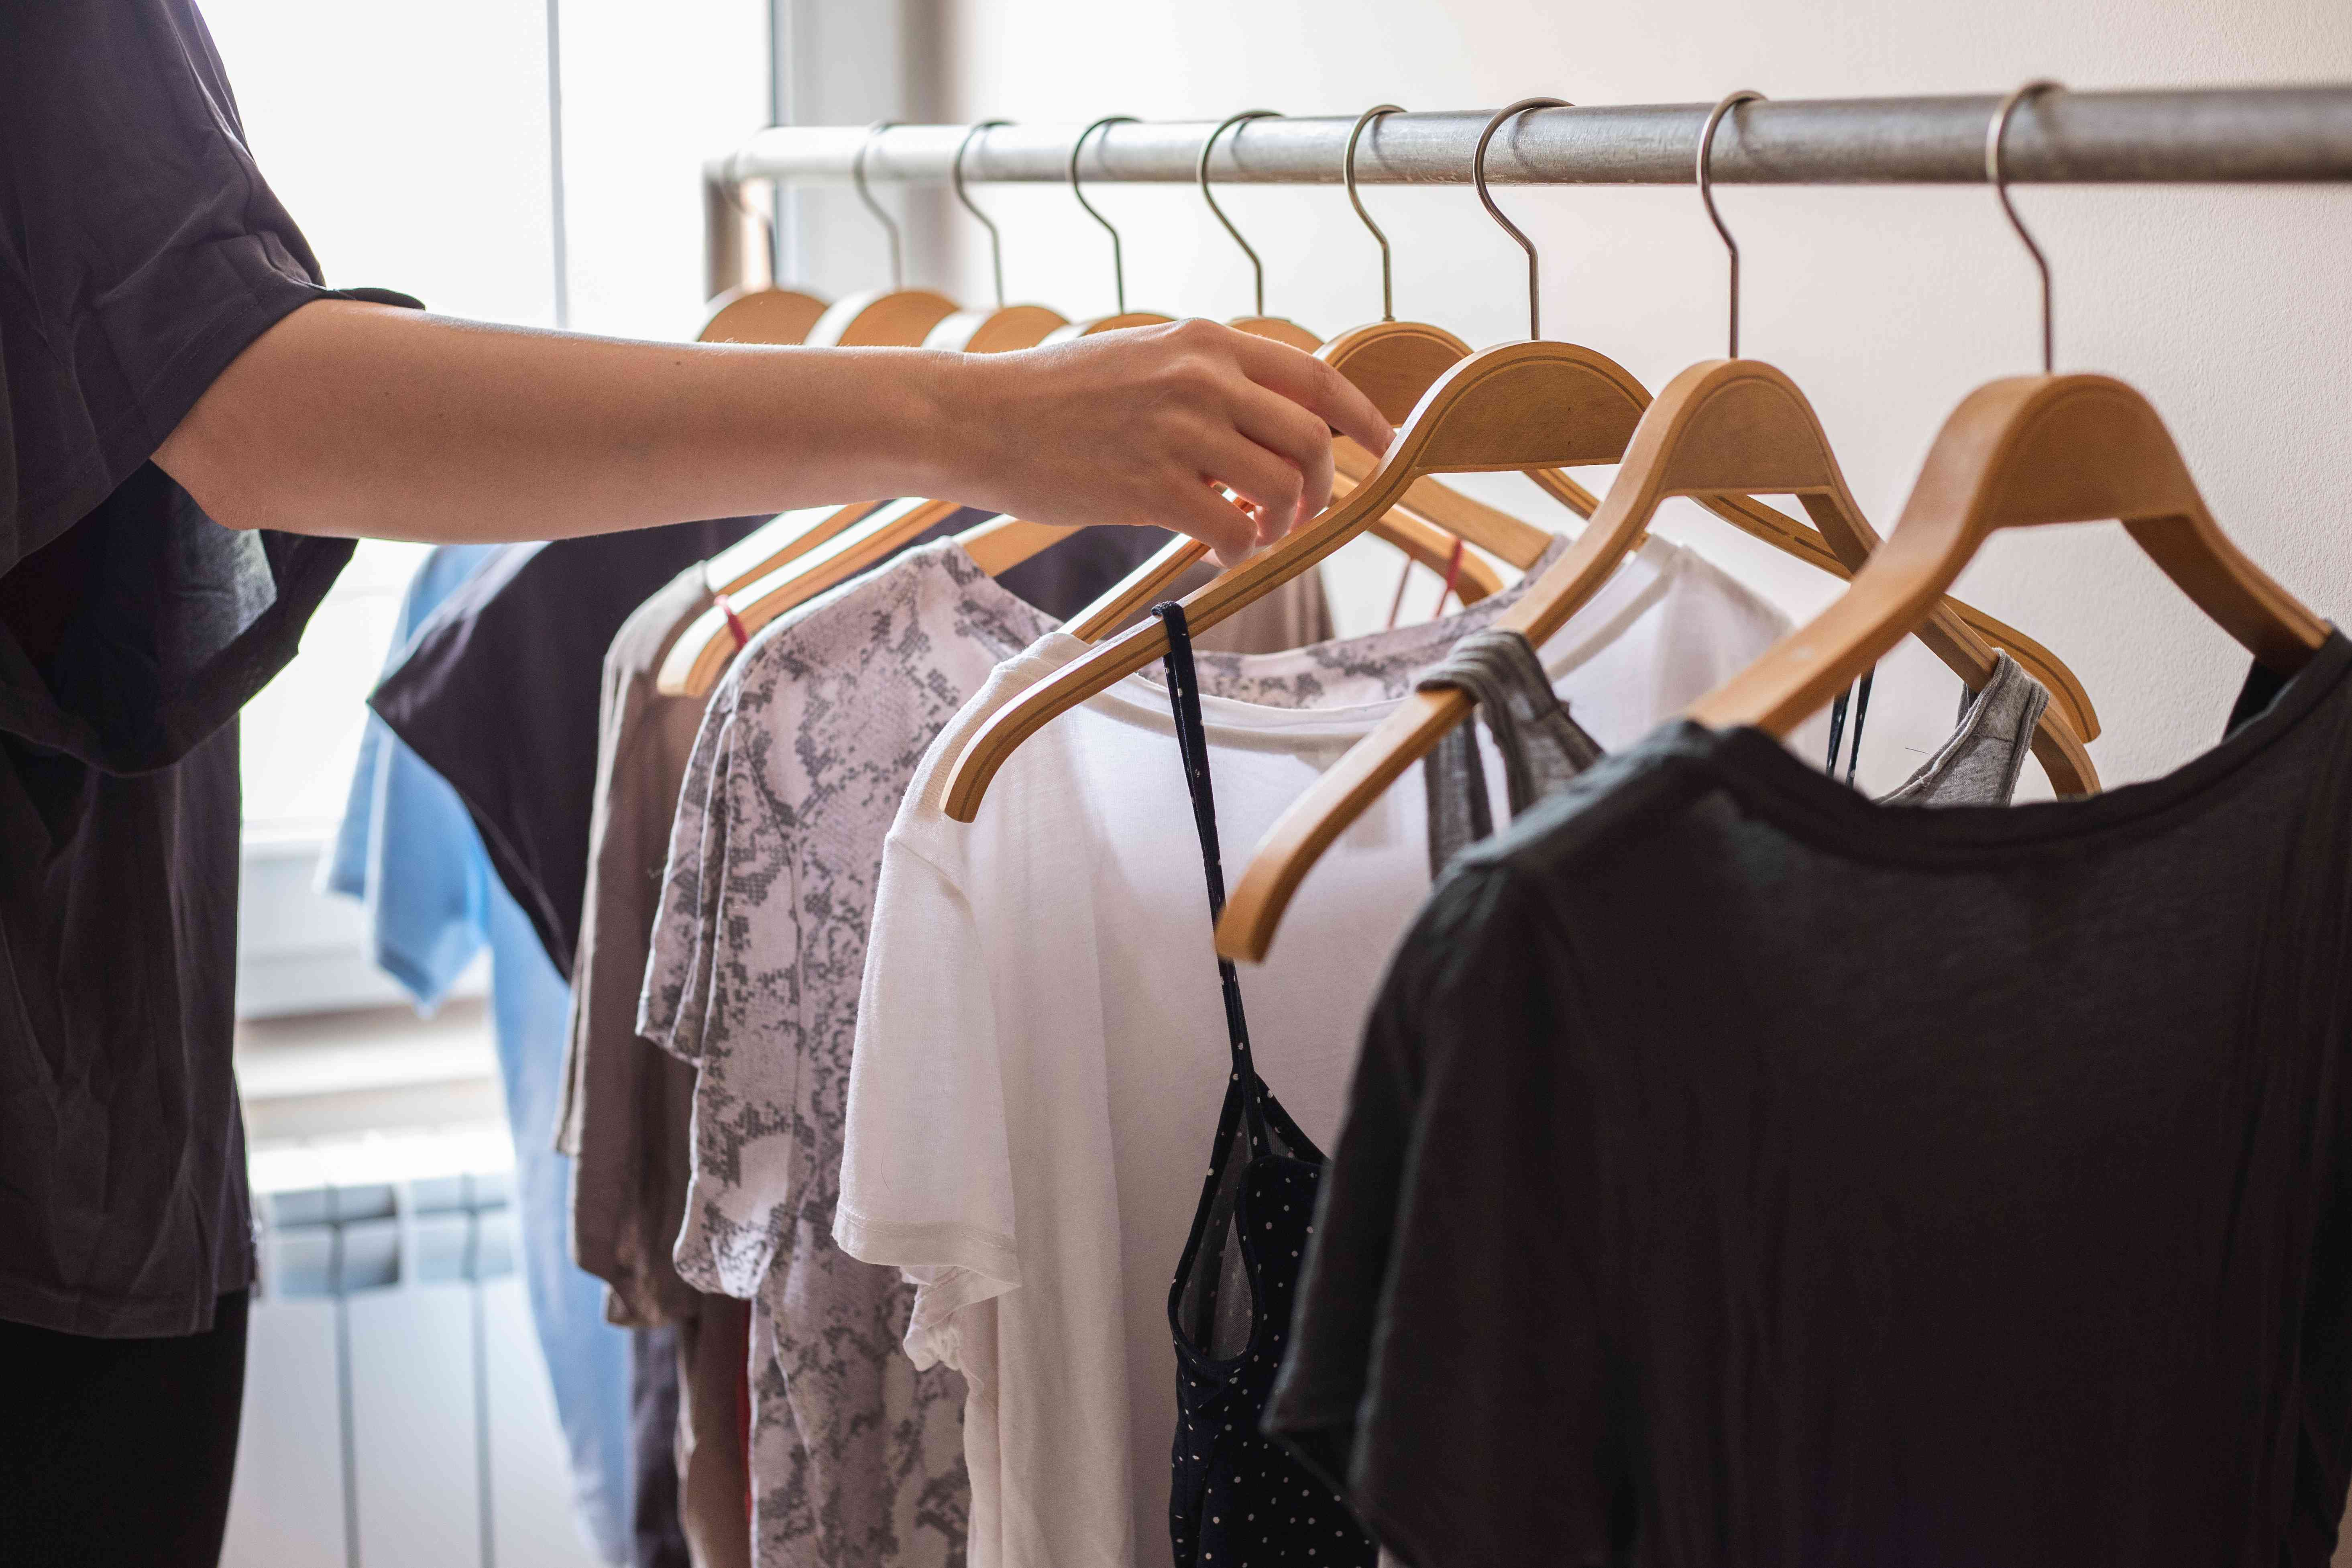 person's arm reaches for modal clothing hung up on wooden hangers on metal clothing rack